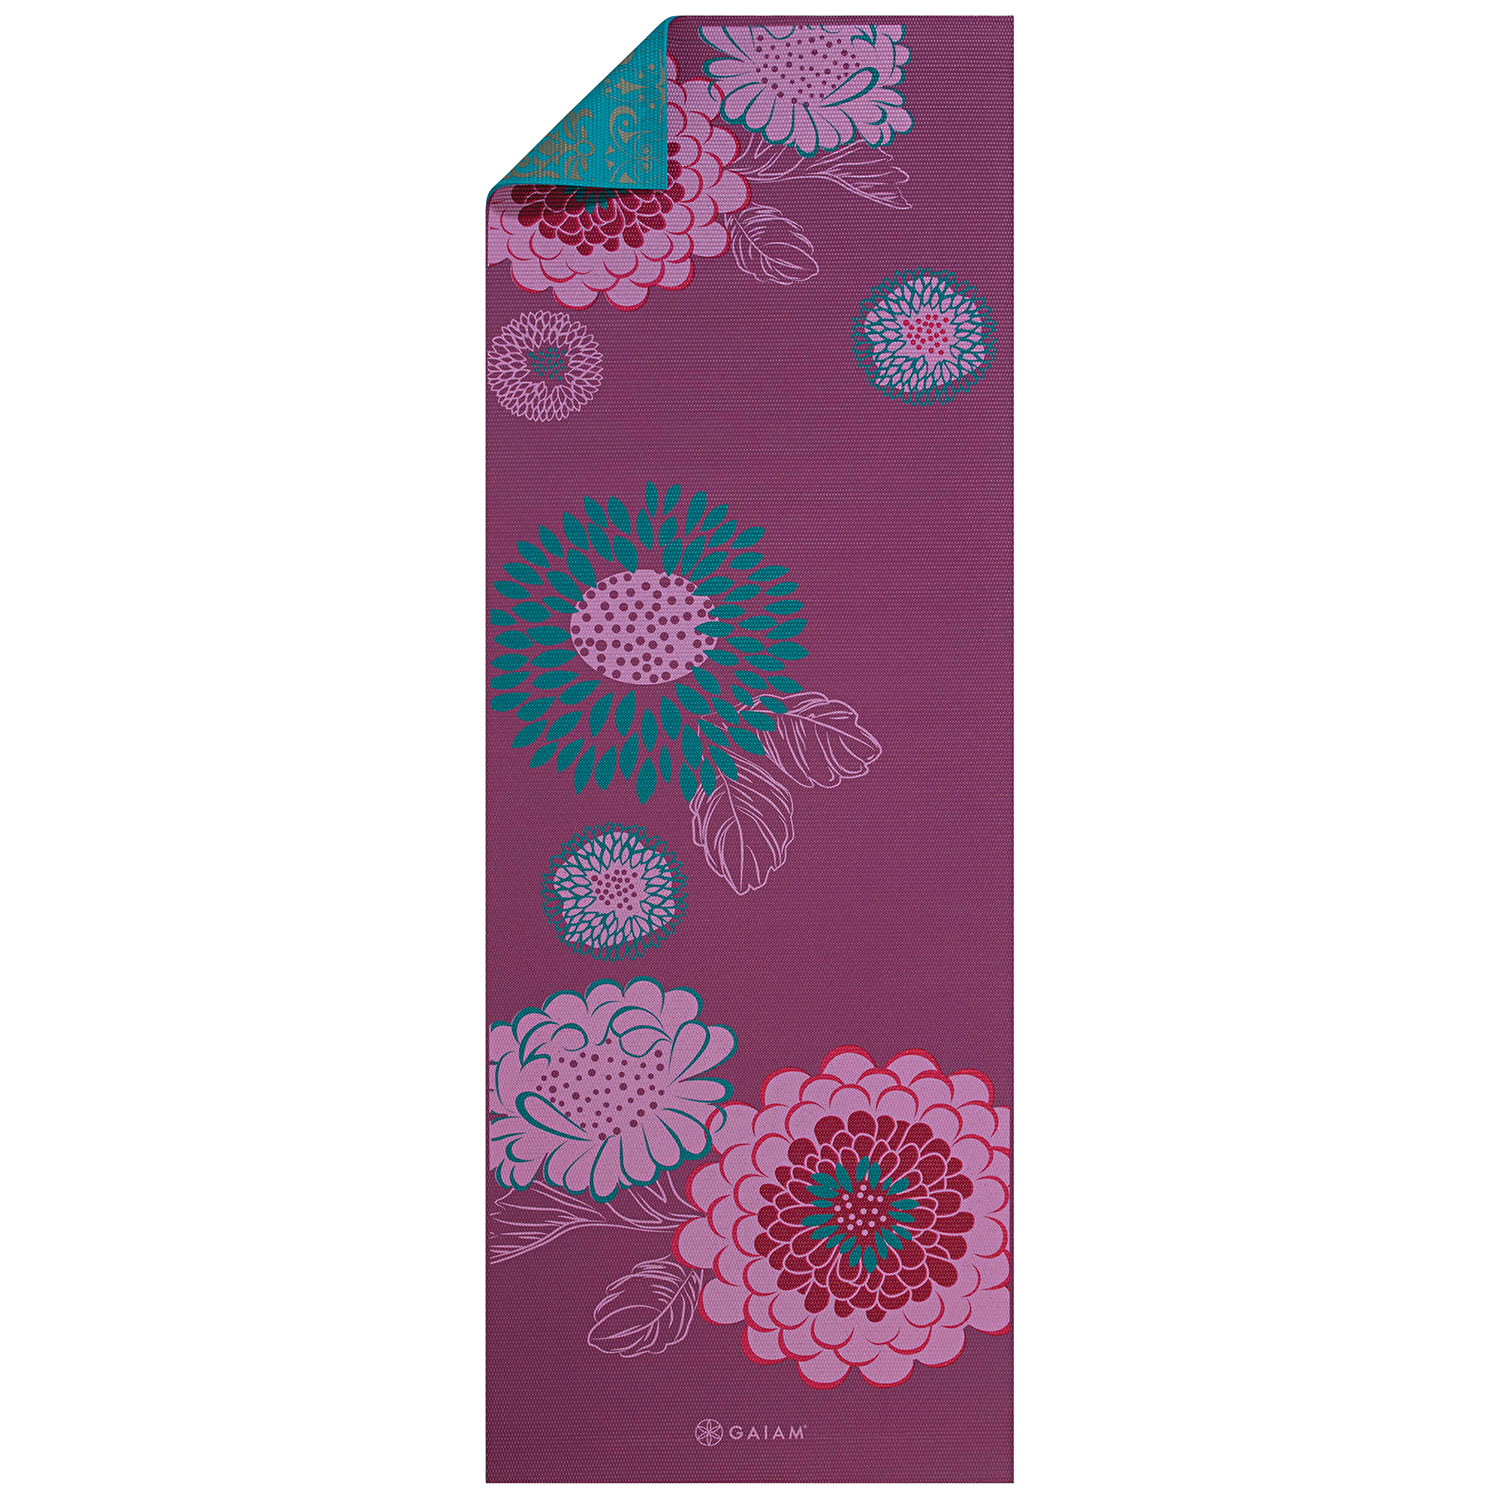 Tapis de yoga réversible de Gaiam - 5 mm - Kiku